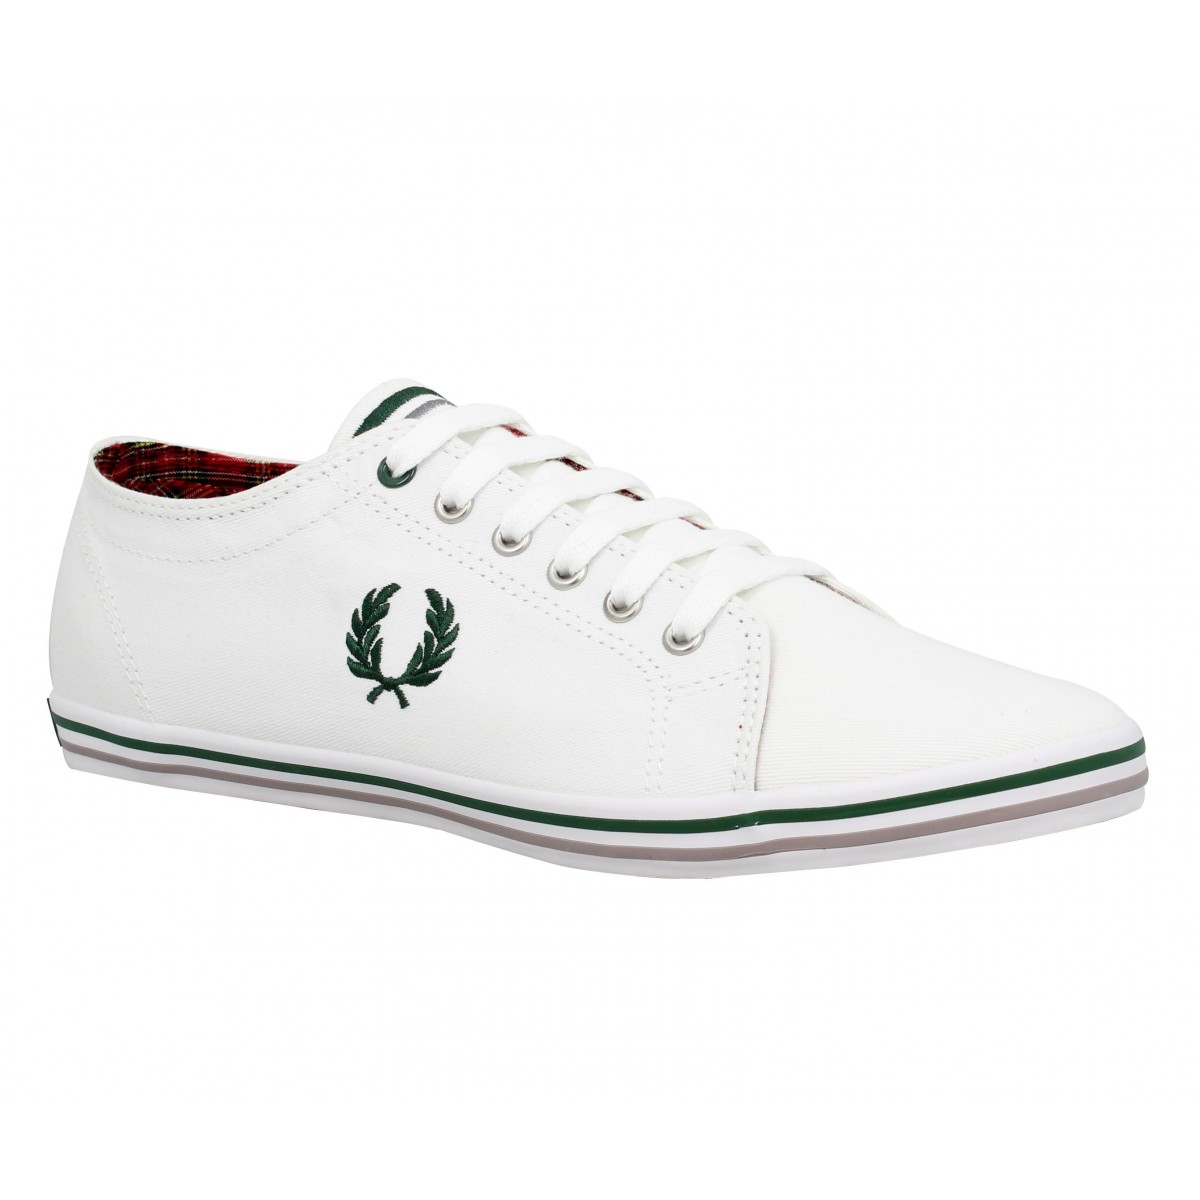 Baskets FRED PERRY Kingston toile Homme Blanc + Vert